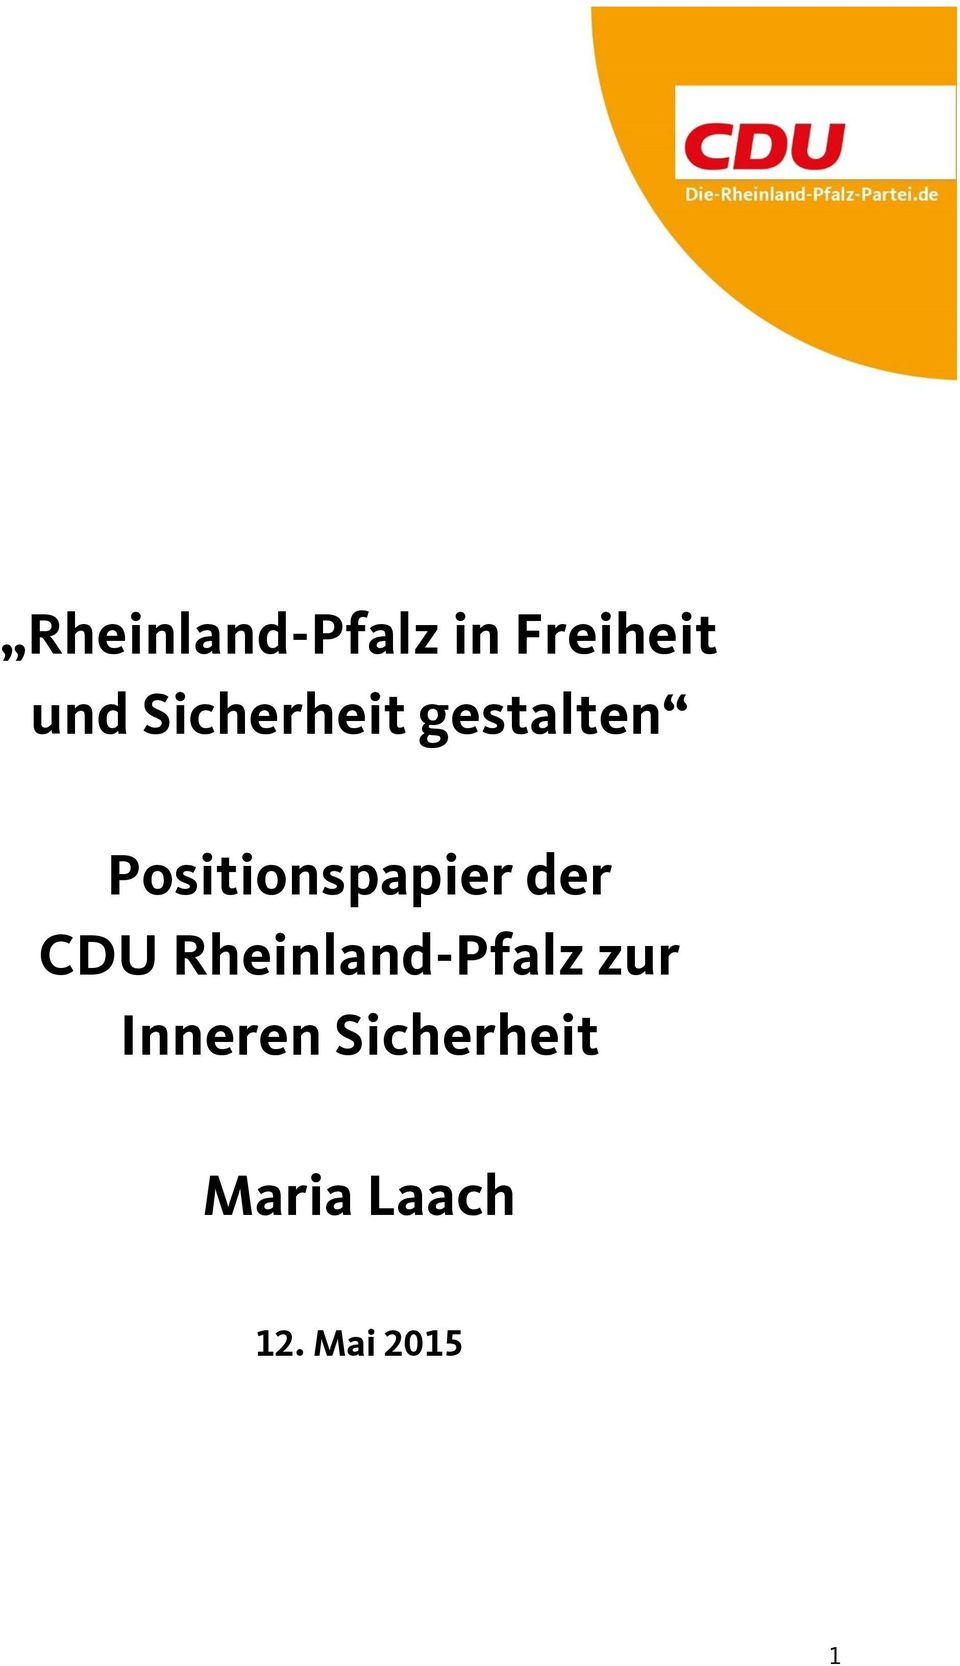 Positionspapier der CDU